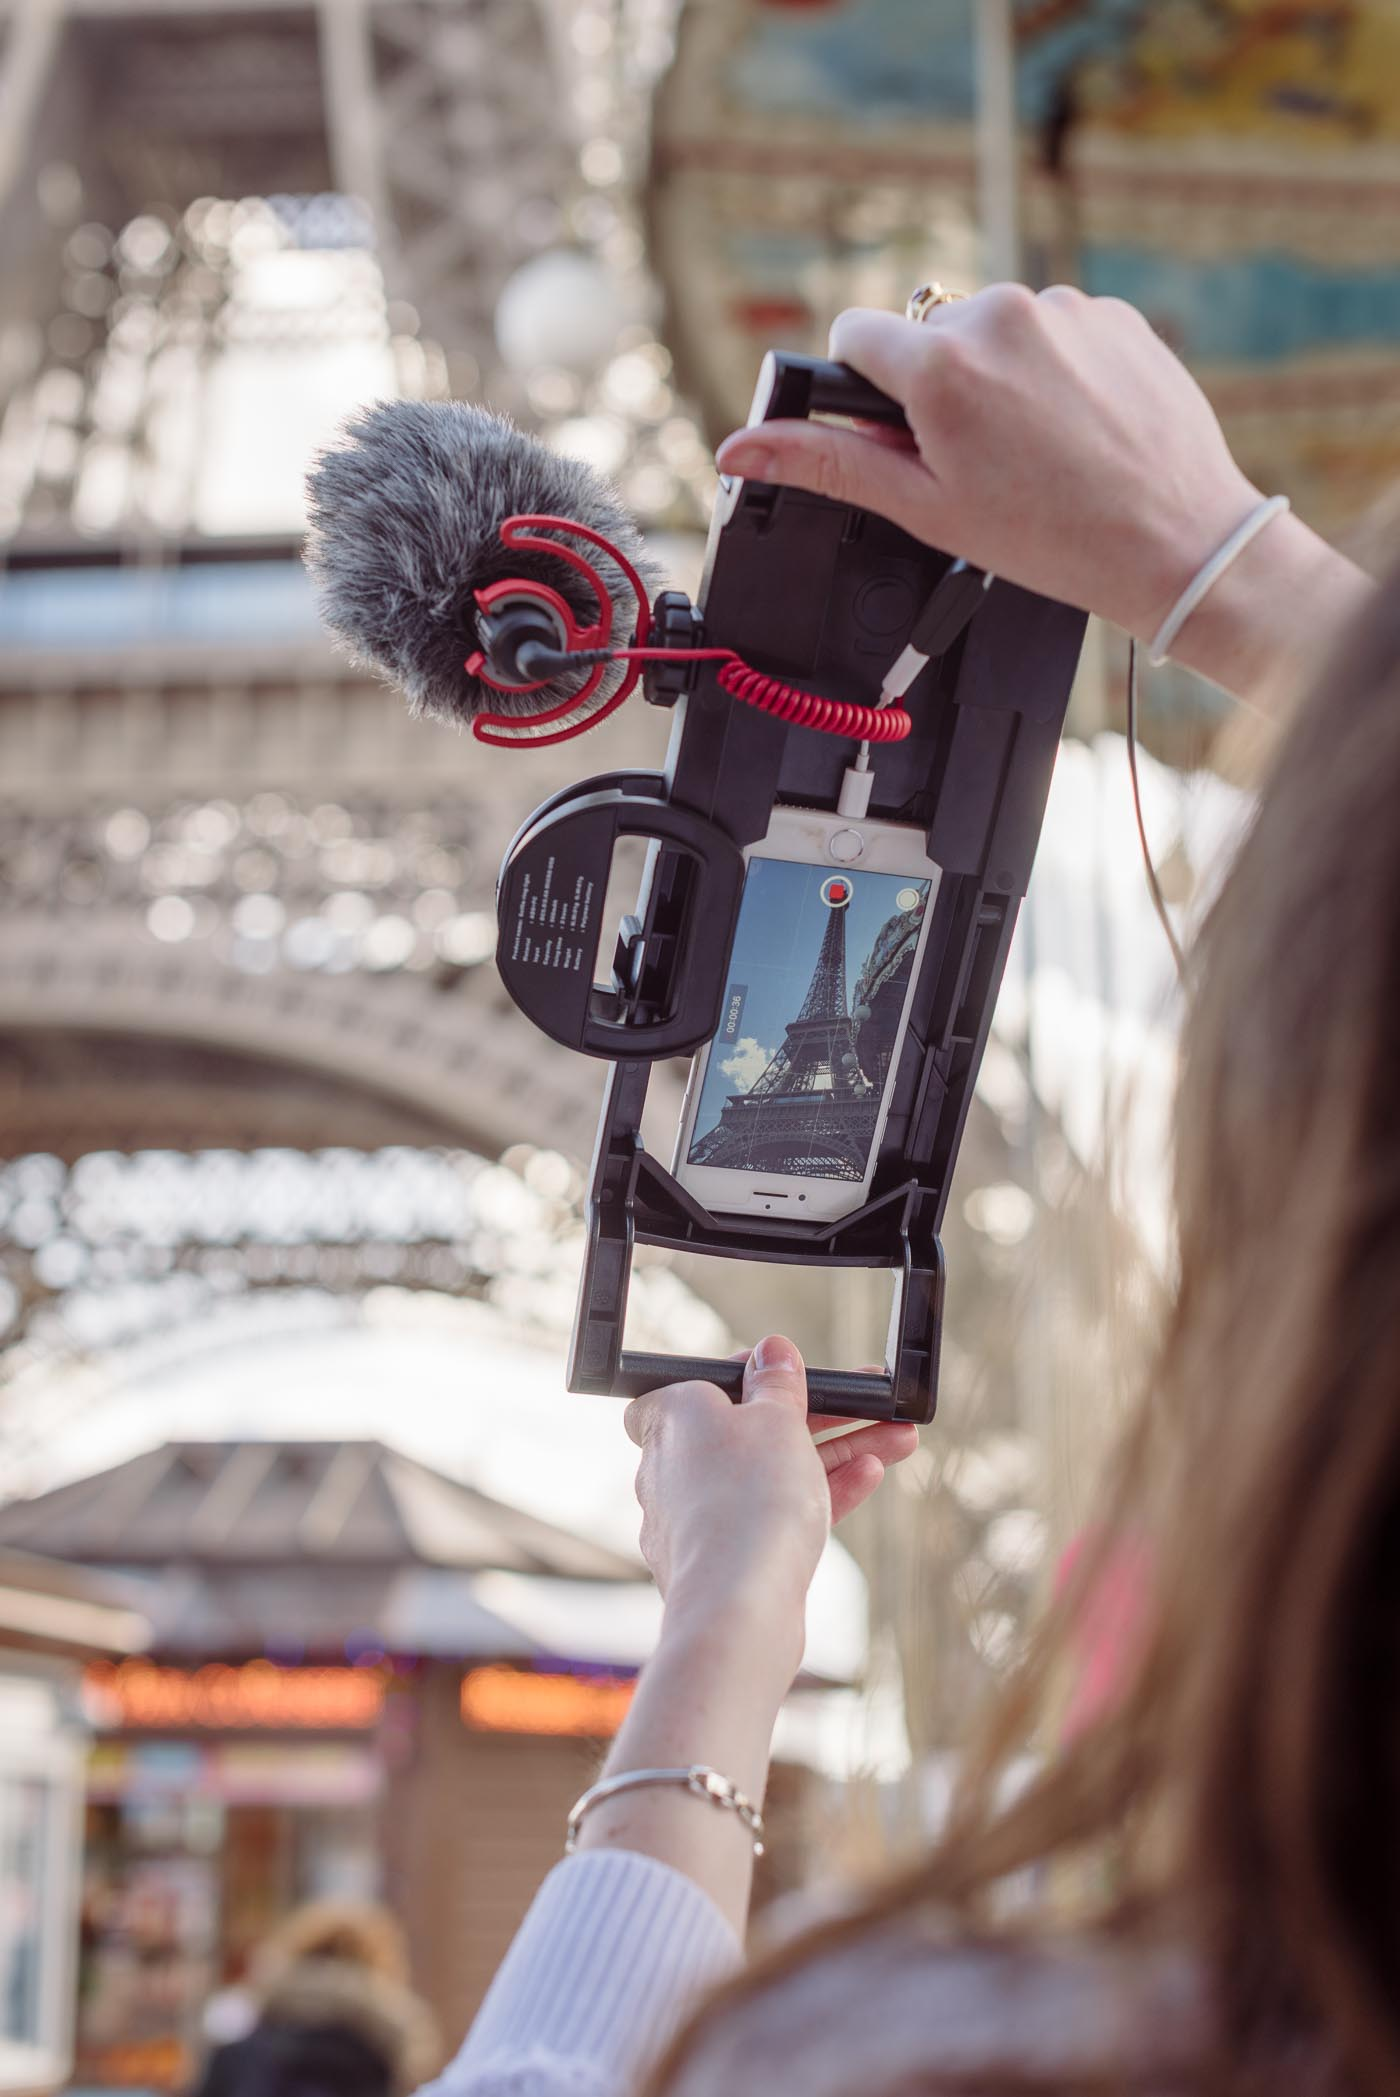 Model holding iphone filming case with phone and microphone and mini ring light to film Eiffel tower vertically in Paris, France